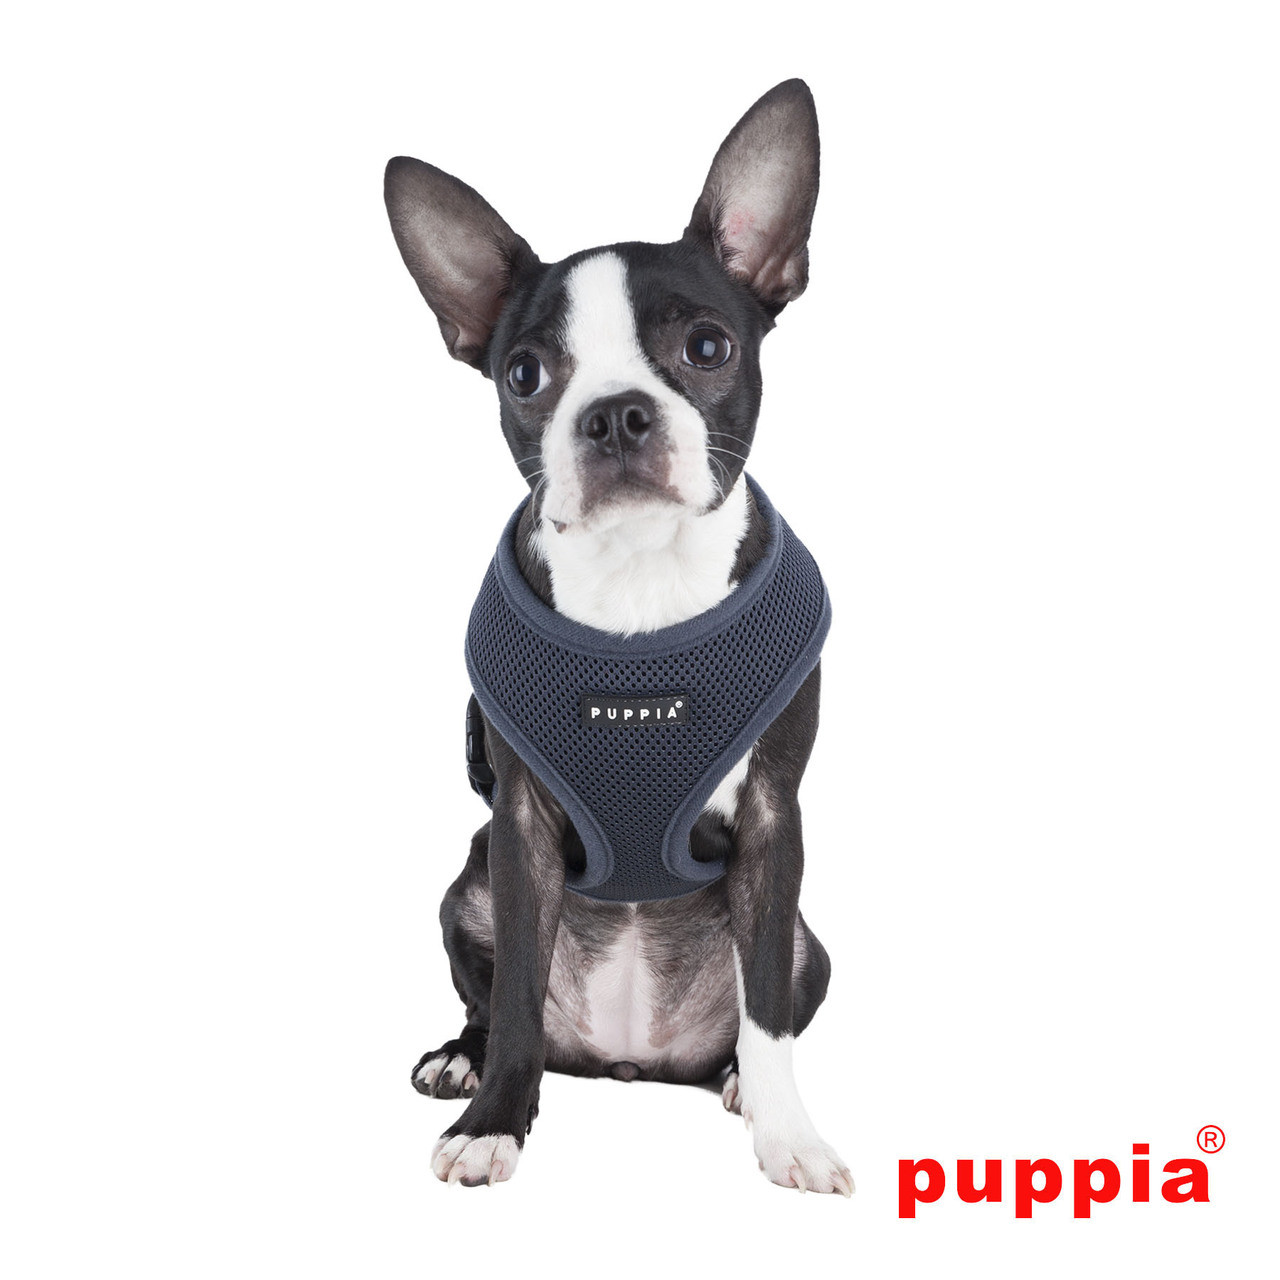 Puppia Soft Mesh Harness in Gray on dog model